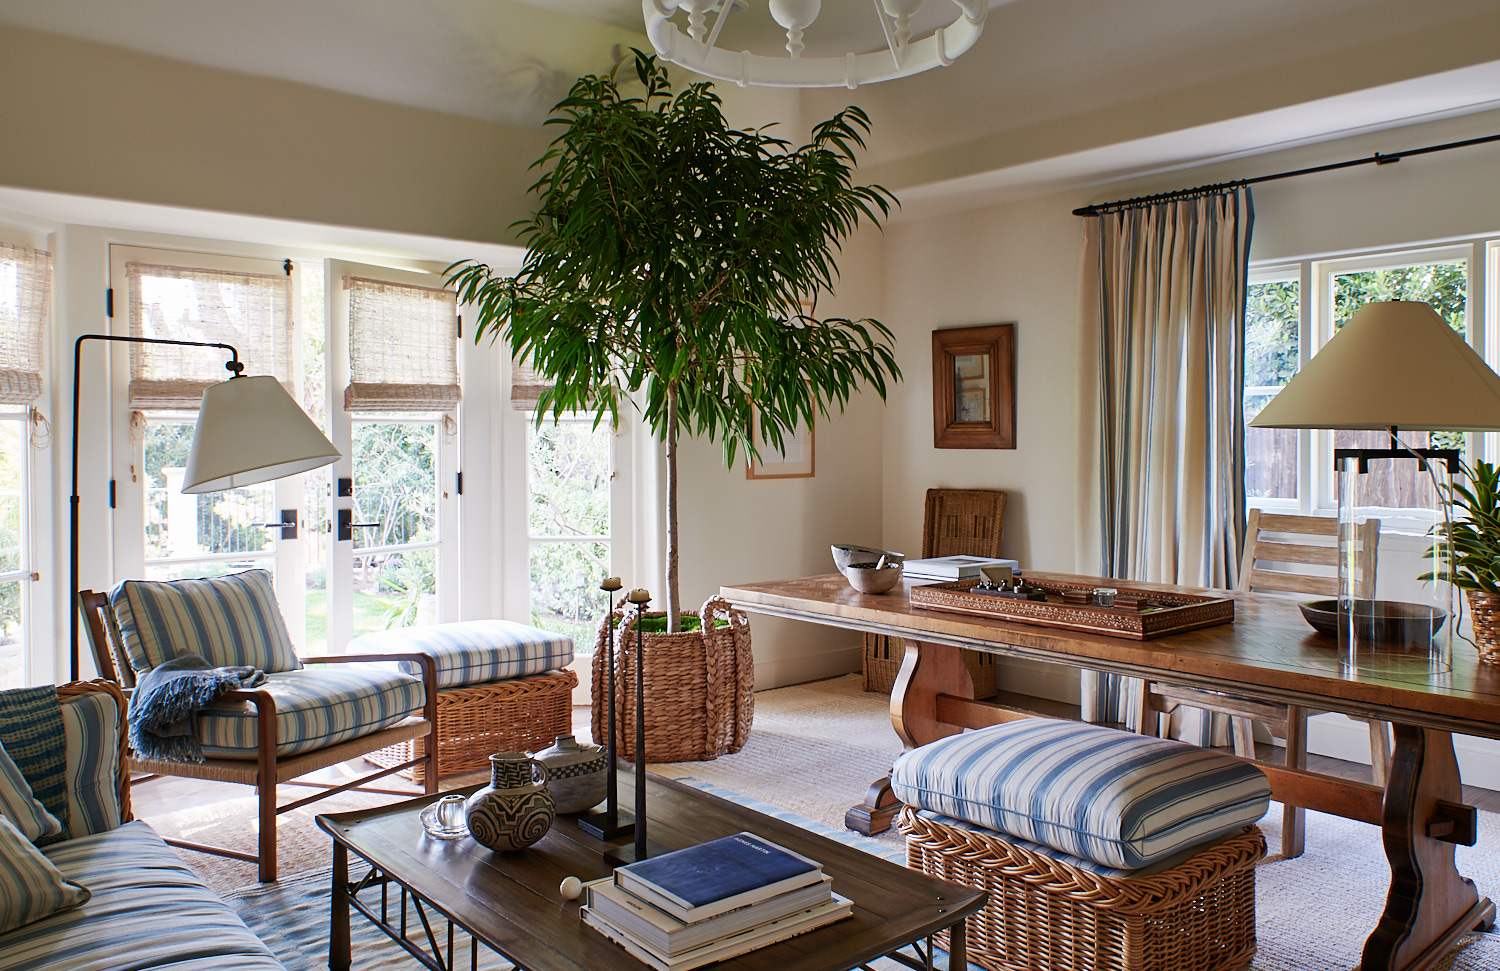 Wide view of office space with cane wicker chairs and striped cushions, bamboo roman shades, and pleated drapery